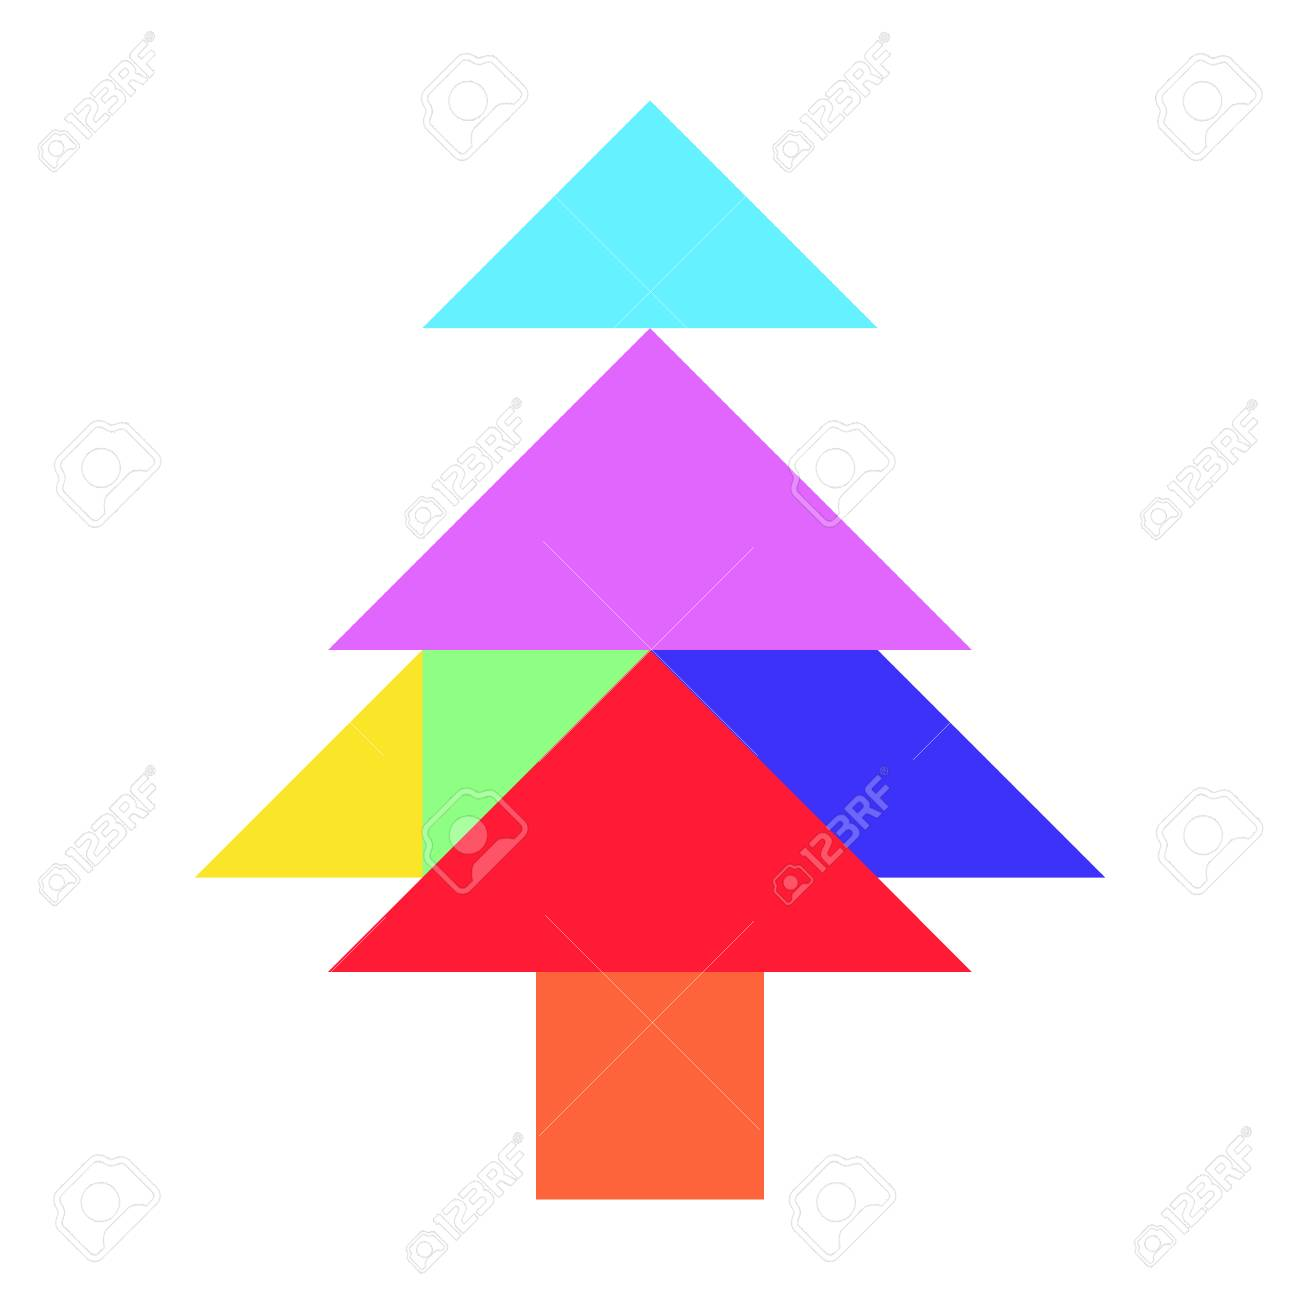 Color Tangram Puzzle In Pine Or Christmas Tree Shape On White ...